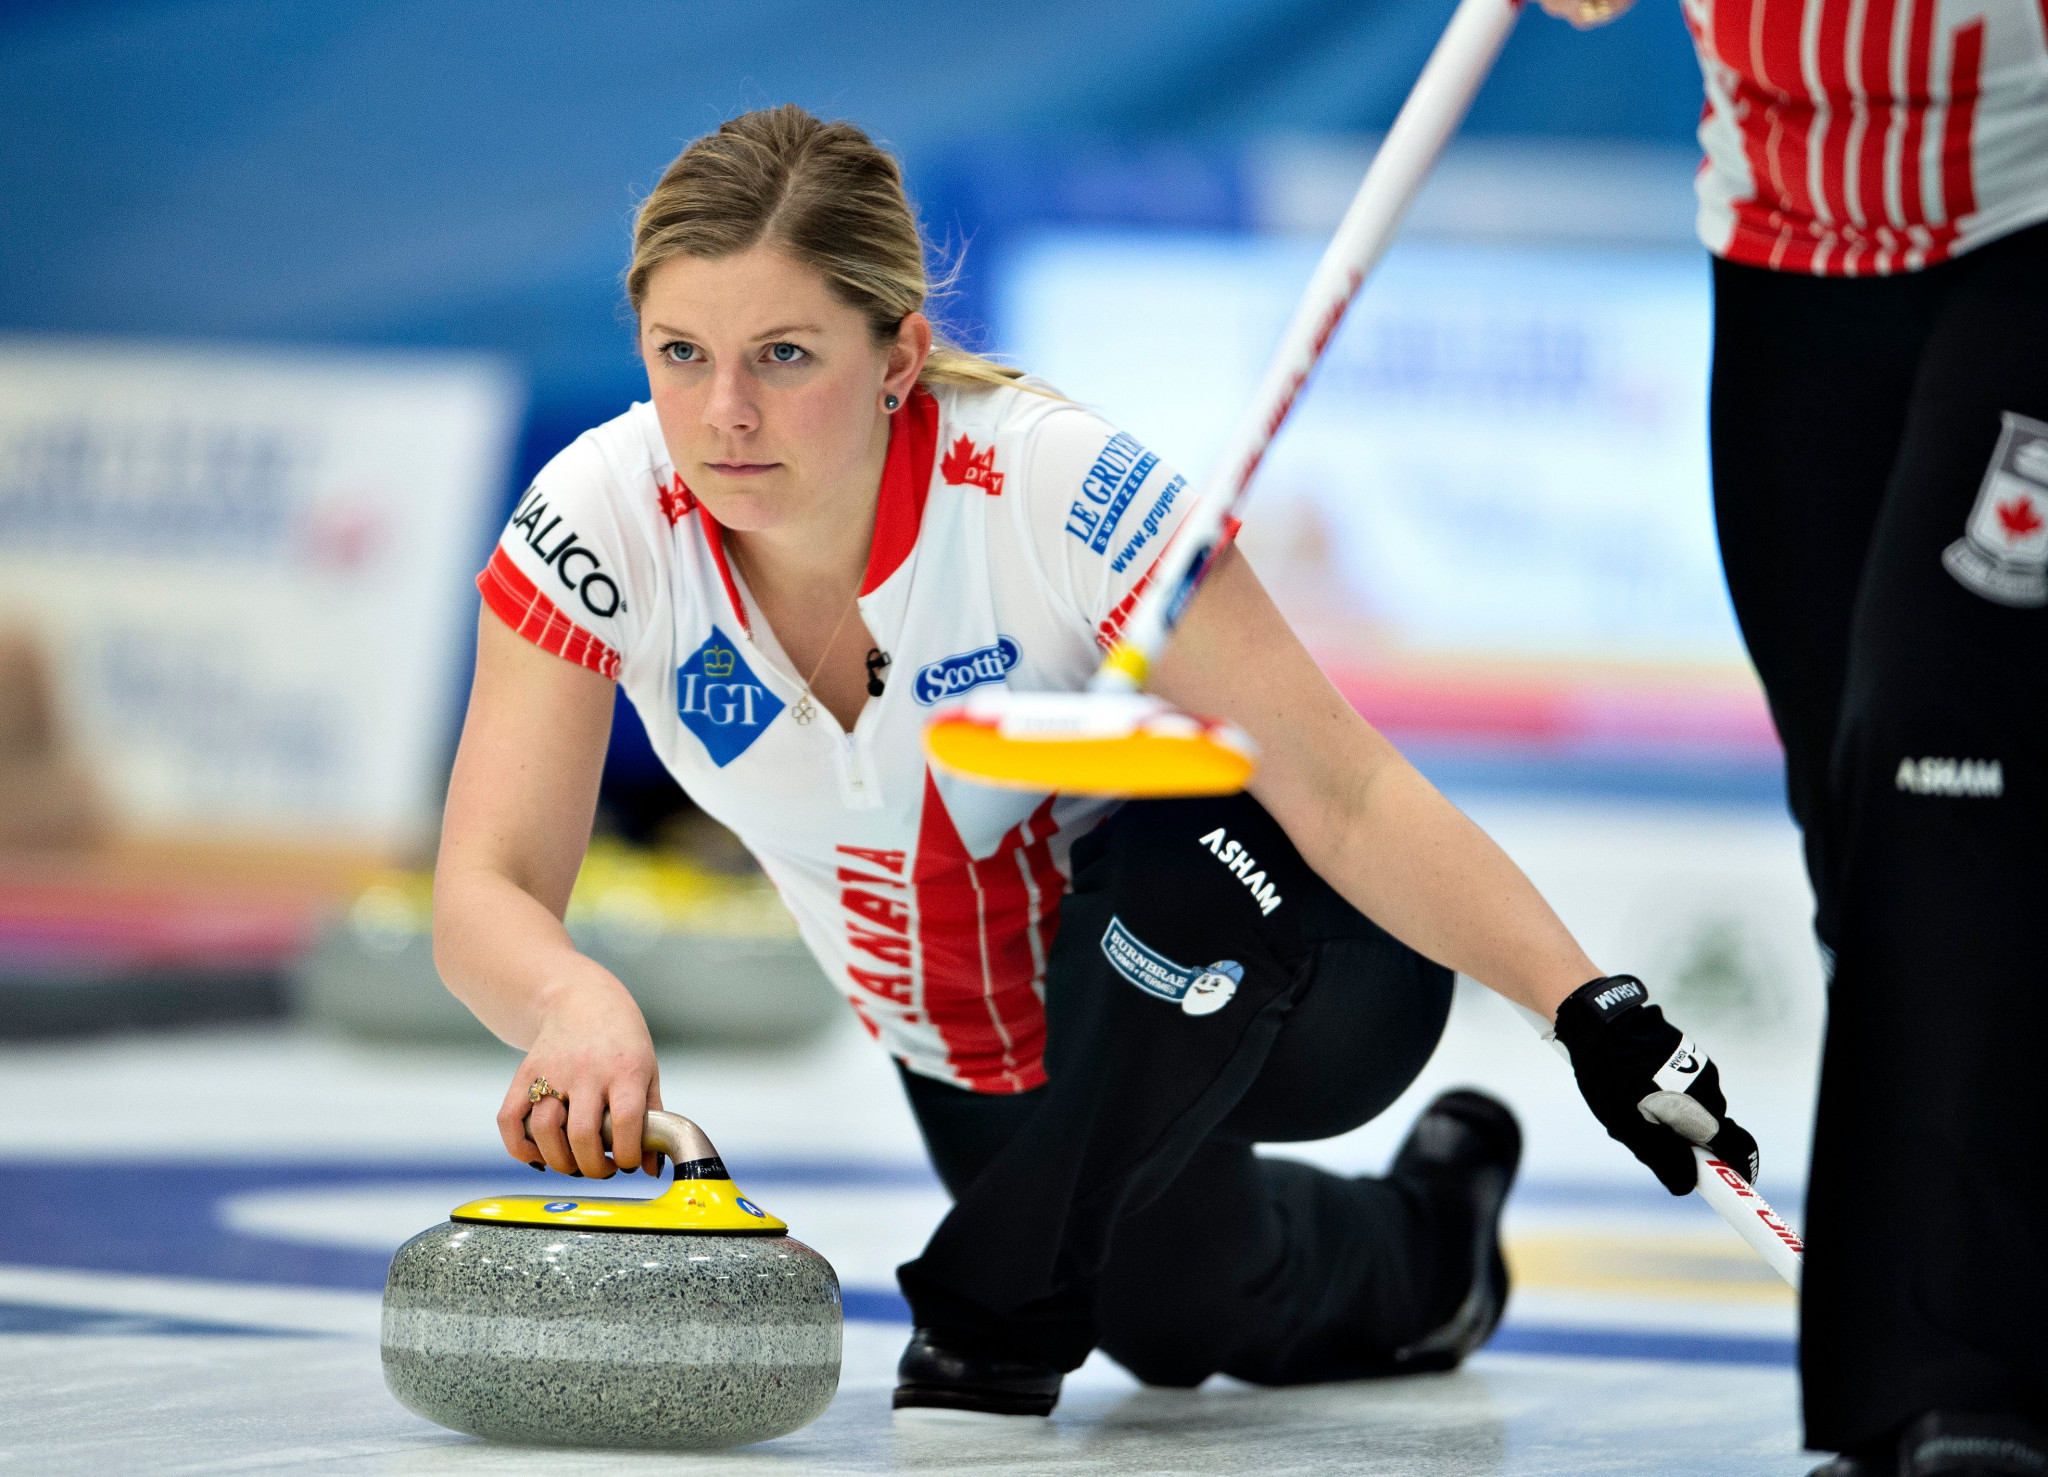 Curling Canada had to cancel a number of events as a result of the COVID-19 pandemic ©Getty Images